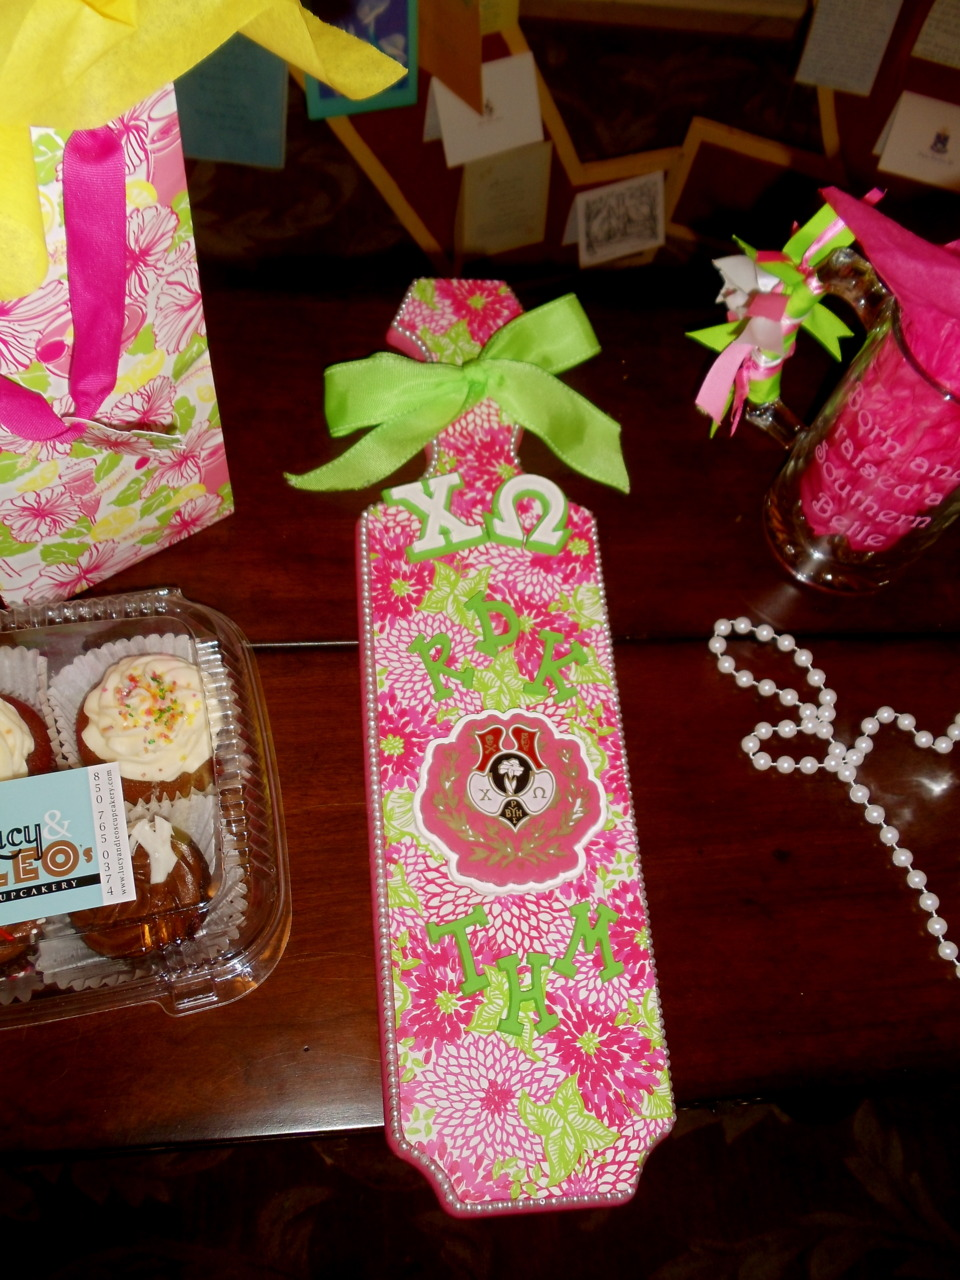 DIY-sorority-craft-lilly-paddle-inspiration…-you-can-do-it-too-This-is-a-cute-gift-wallpaper-wp5404581